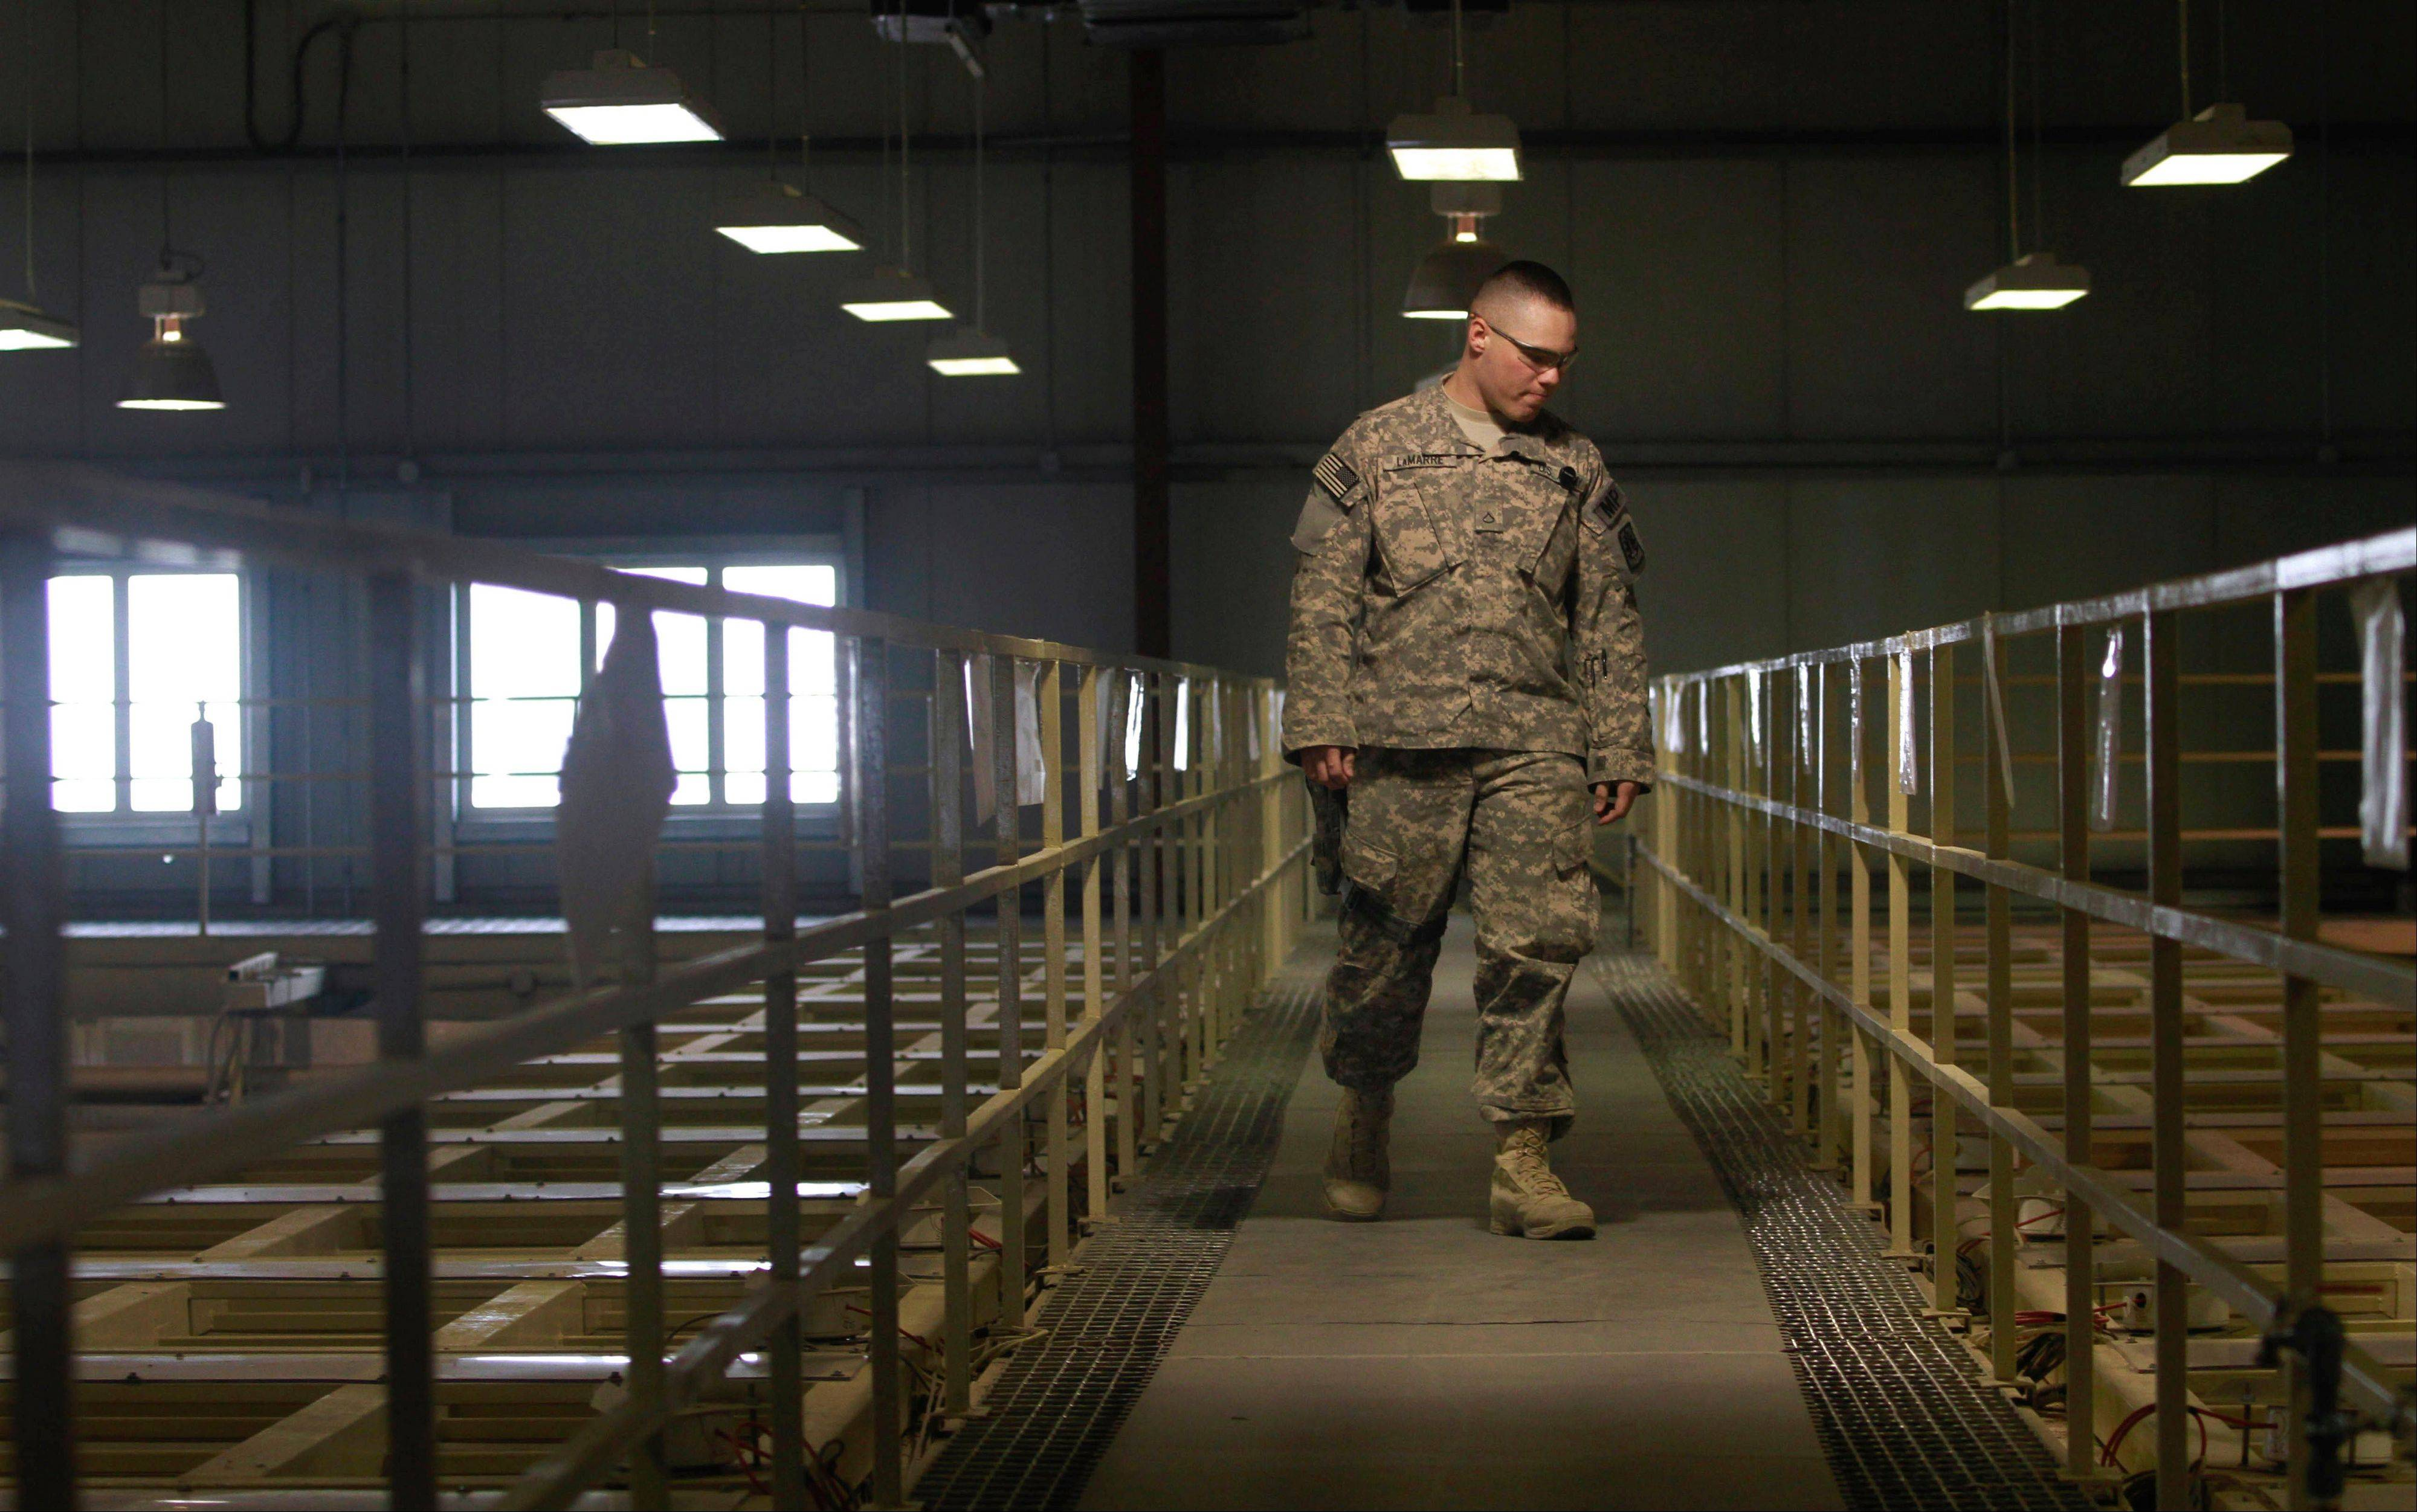 Associated Press/March 23, 2011A U.S. military guard watches over detainee cells inside the Parwan detention facility near Bagram Air Field in Afghanistan.